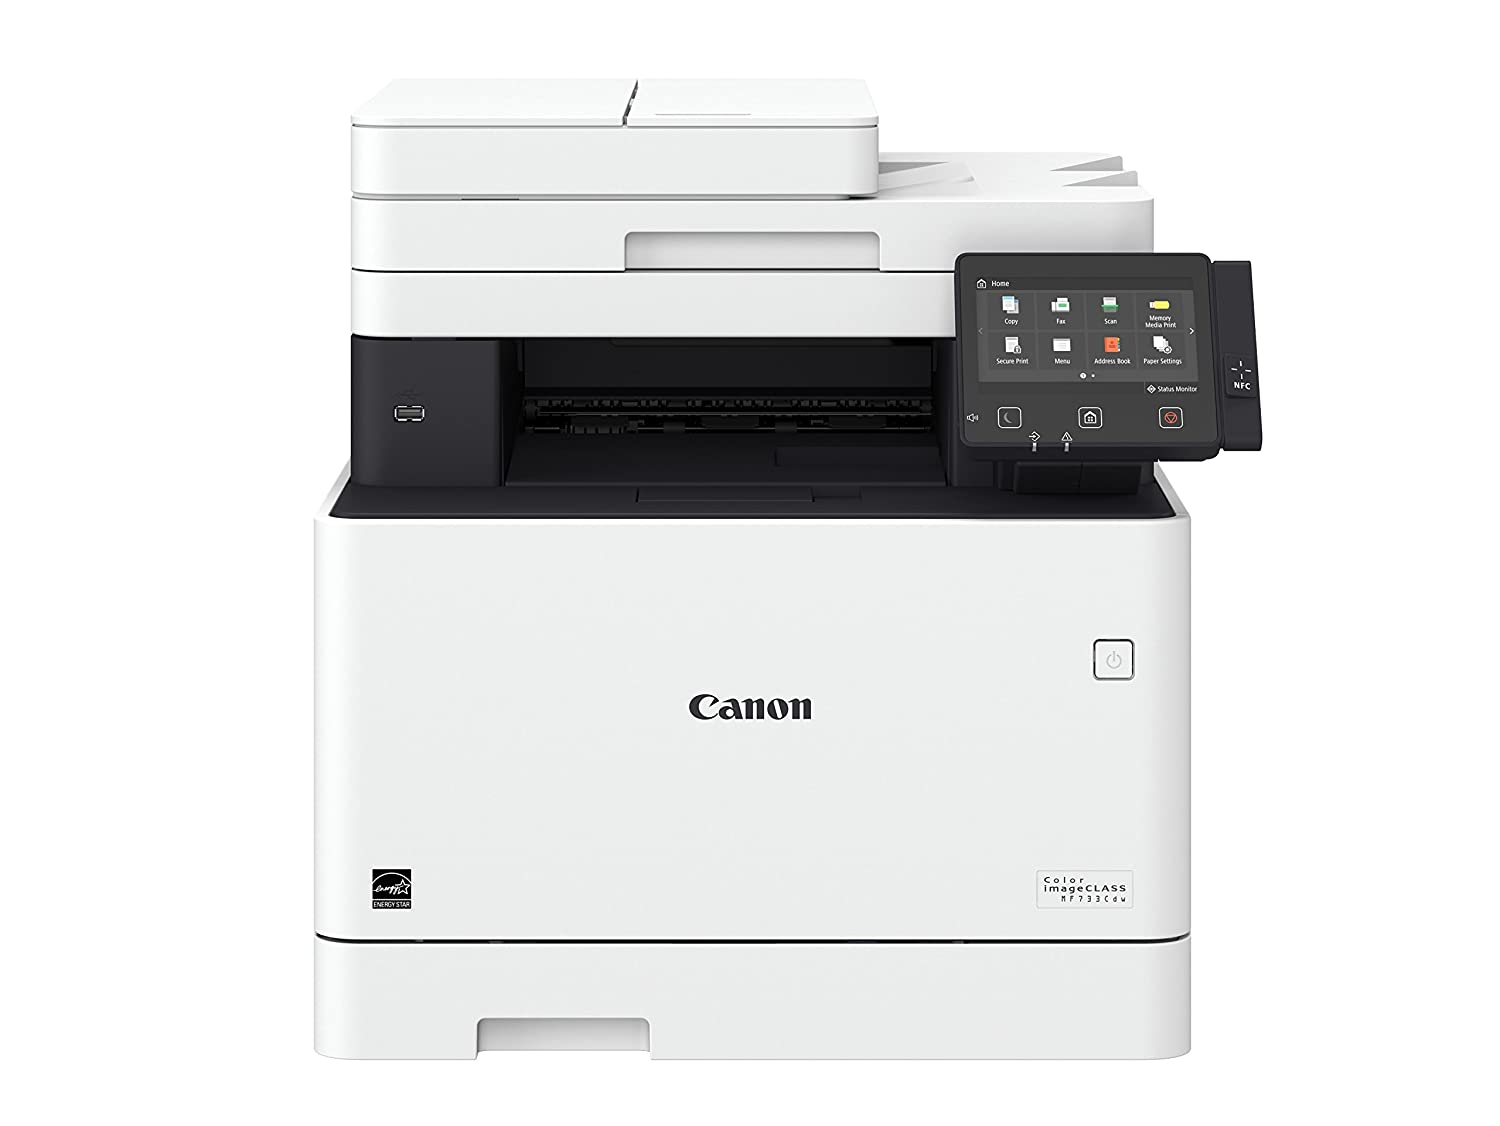 Top 10 Best Printers for Graphic Designers (2020 reviews) 7